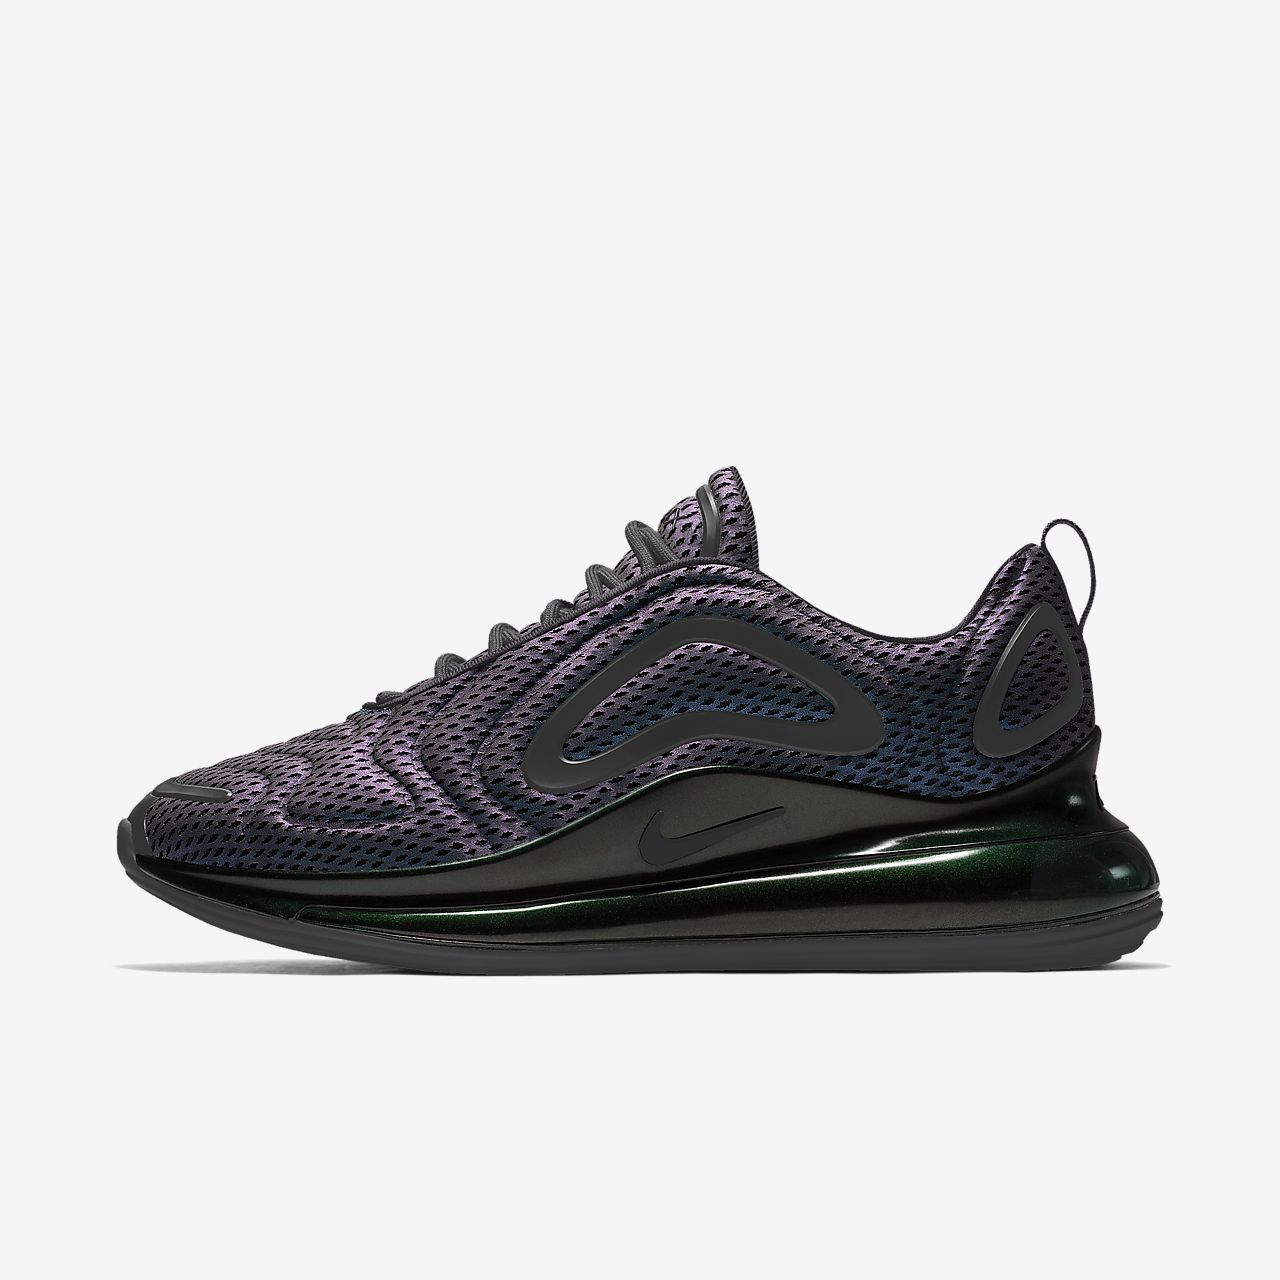 Chaussure lifestyle personnalisable Nike Air Max 720 By You pour Femme